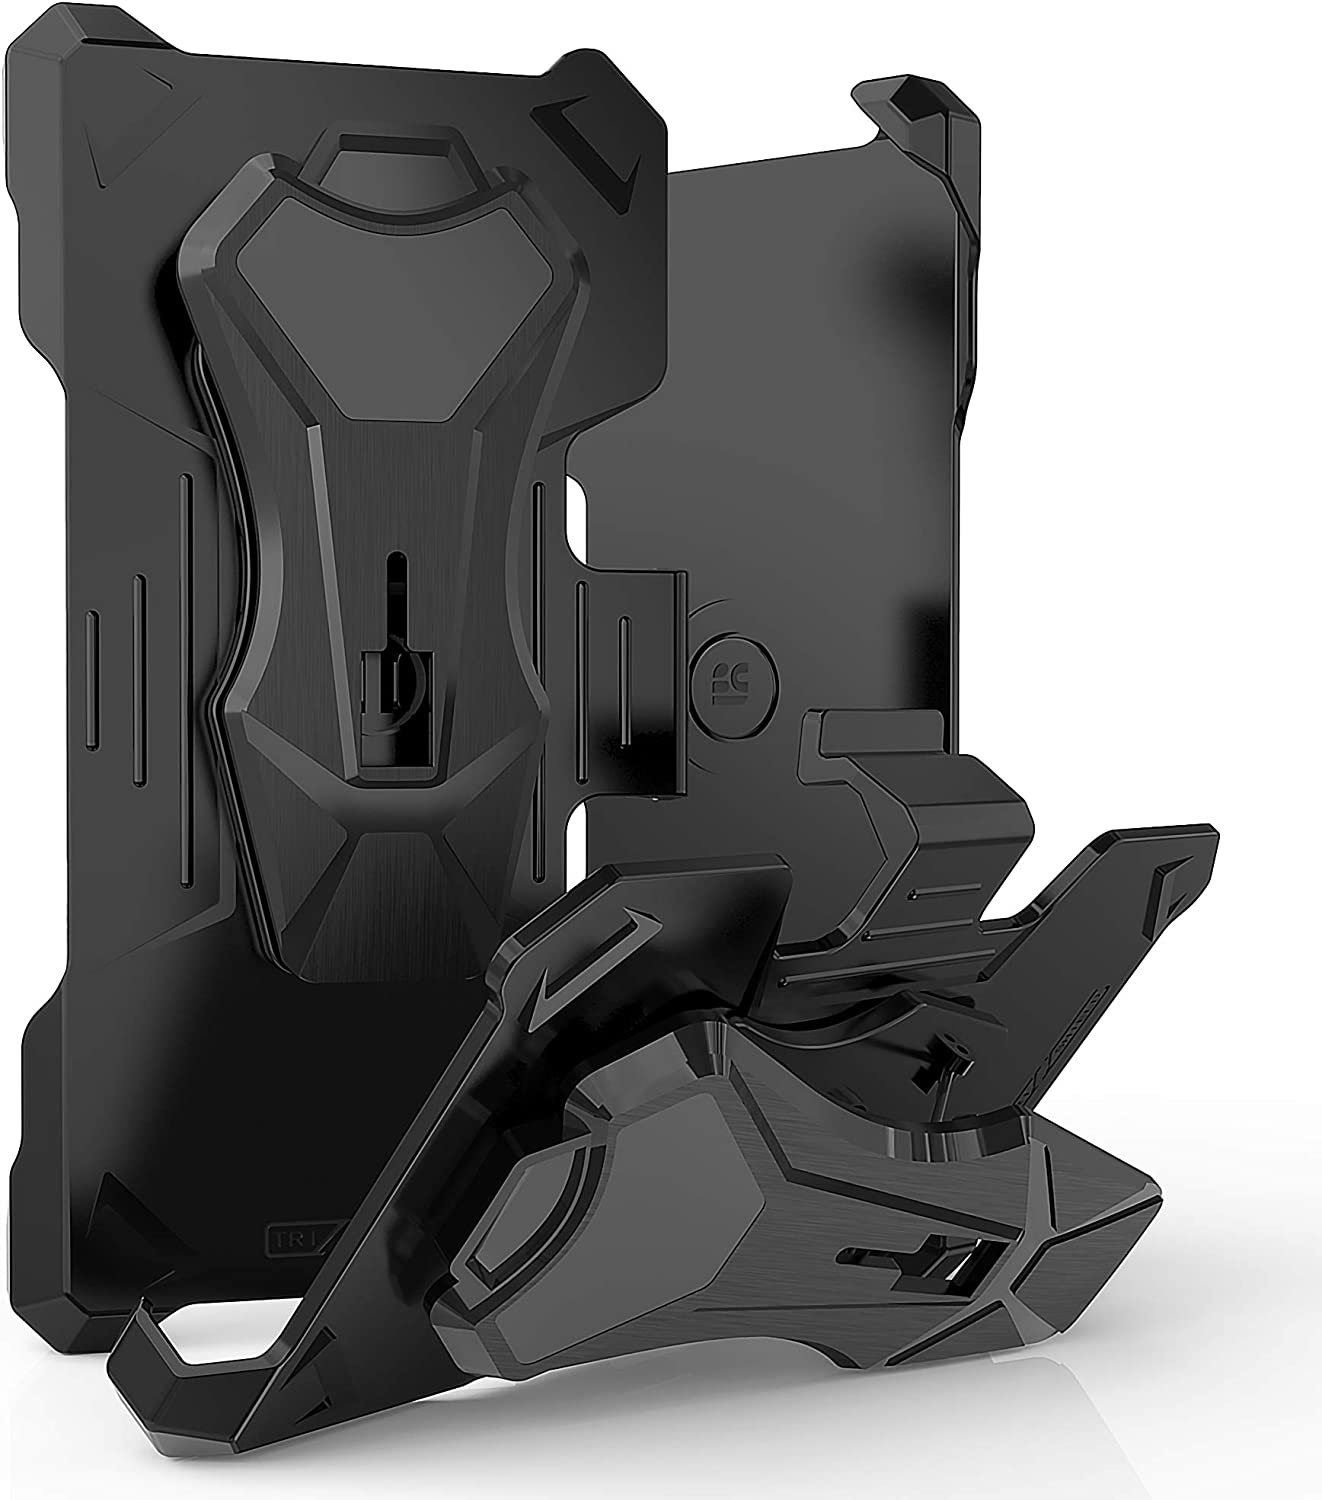 Belt Clip Holster Works with Tri-Shield 2.0 Case Compatible with iPhone 12 Pro Max 6.7